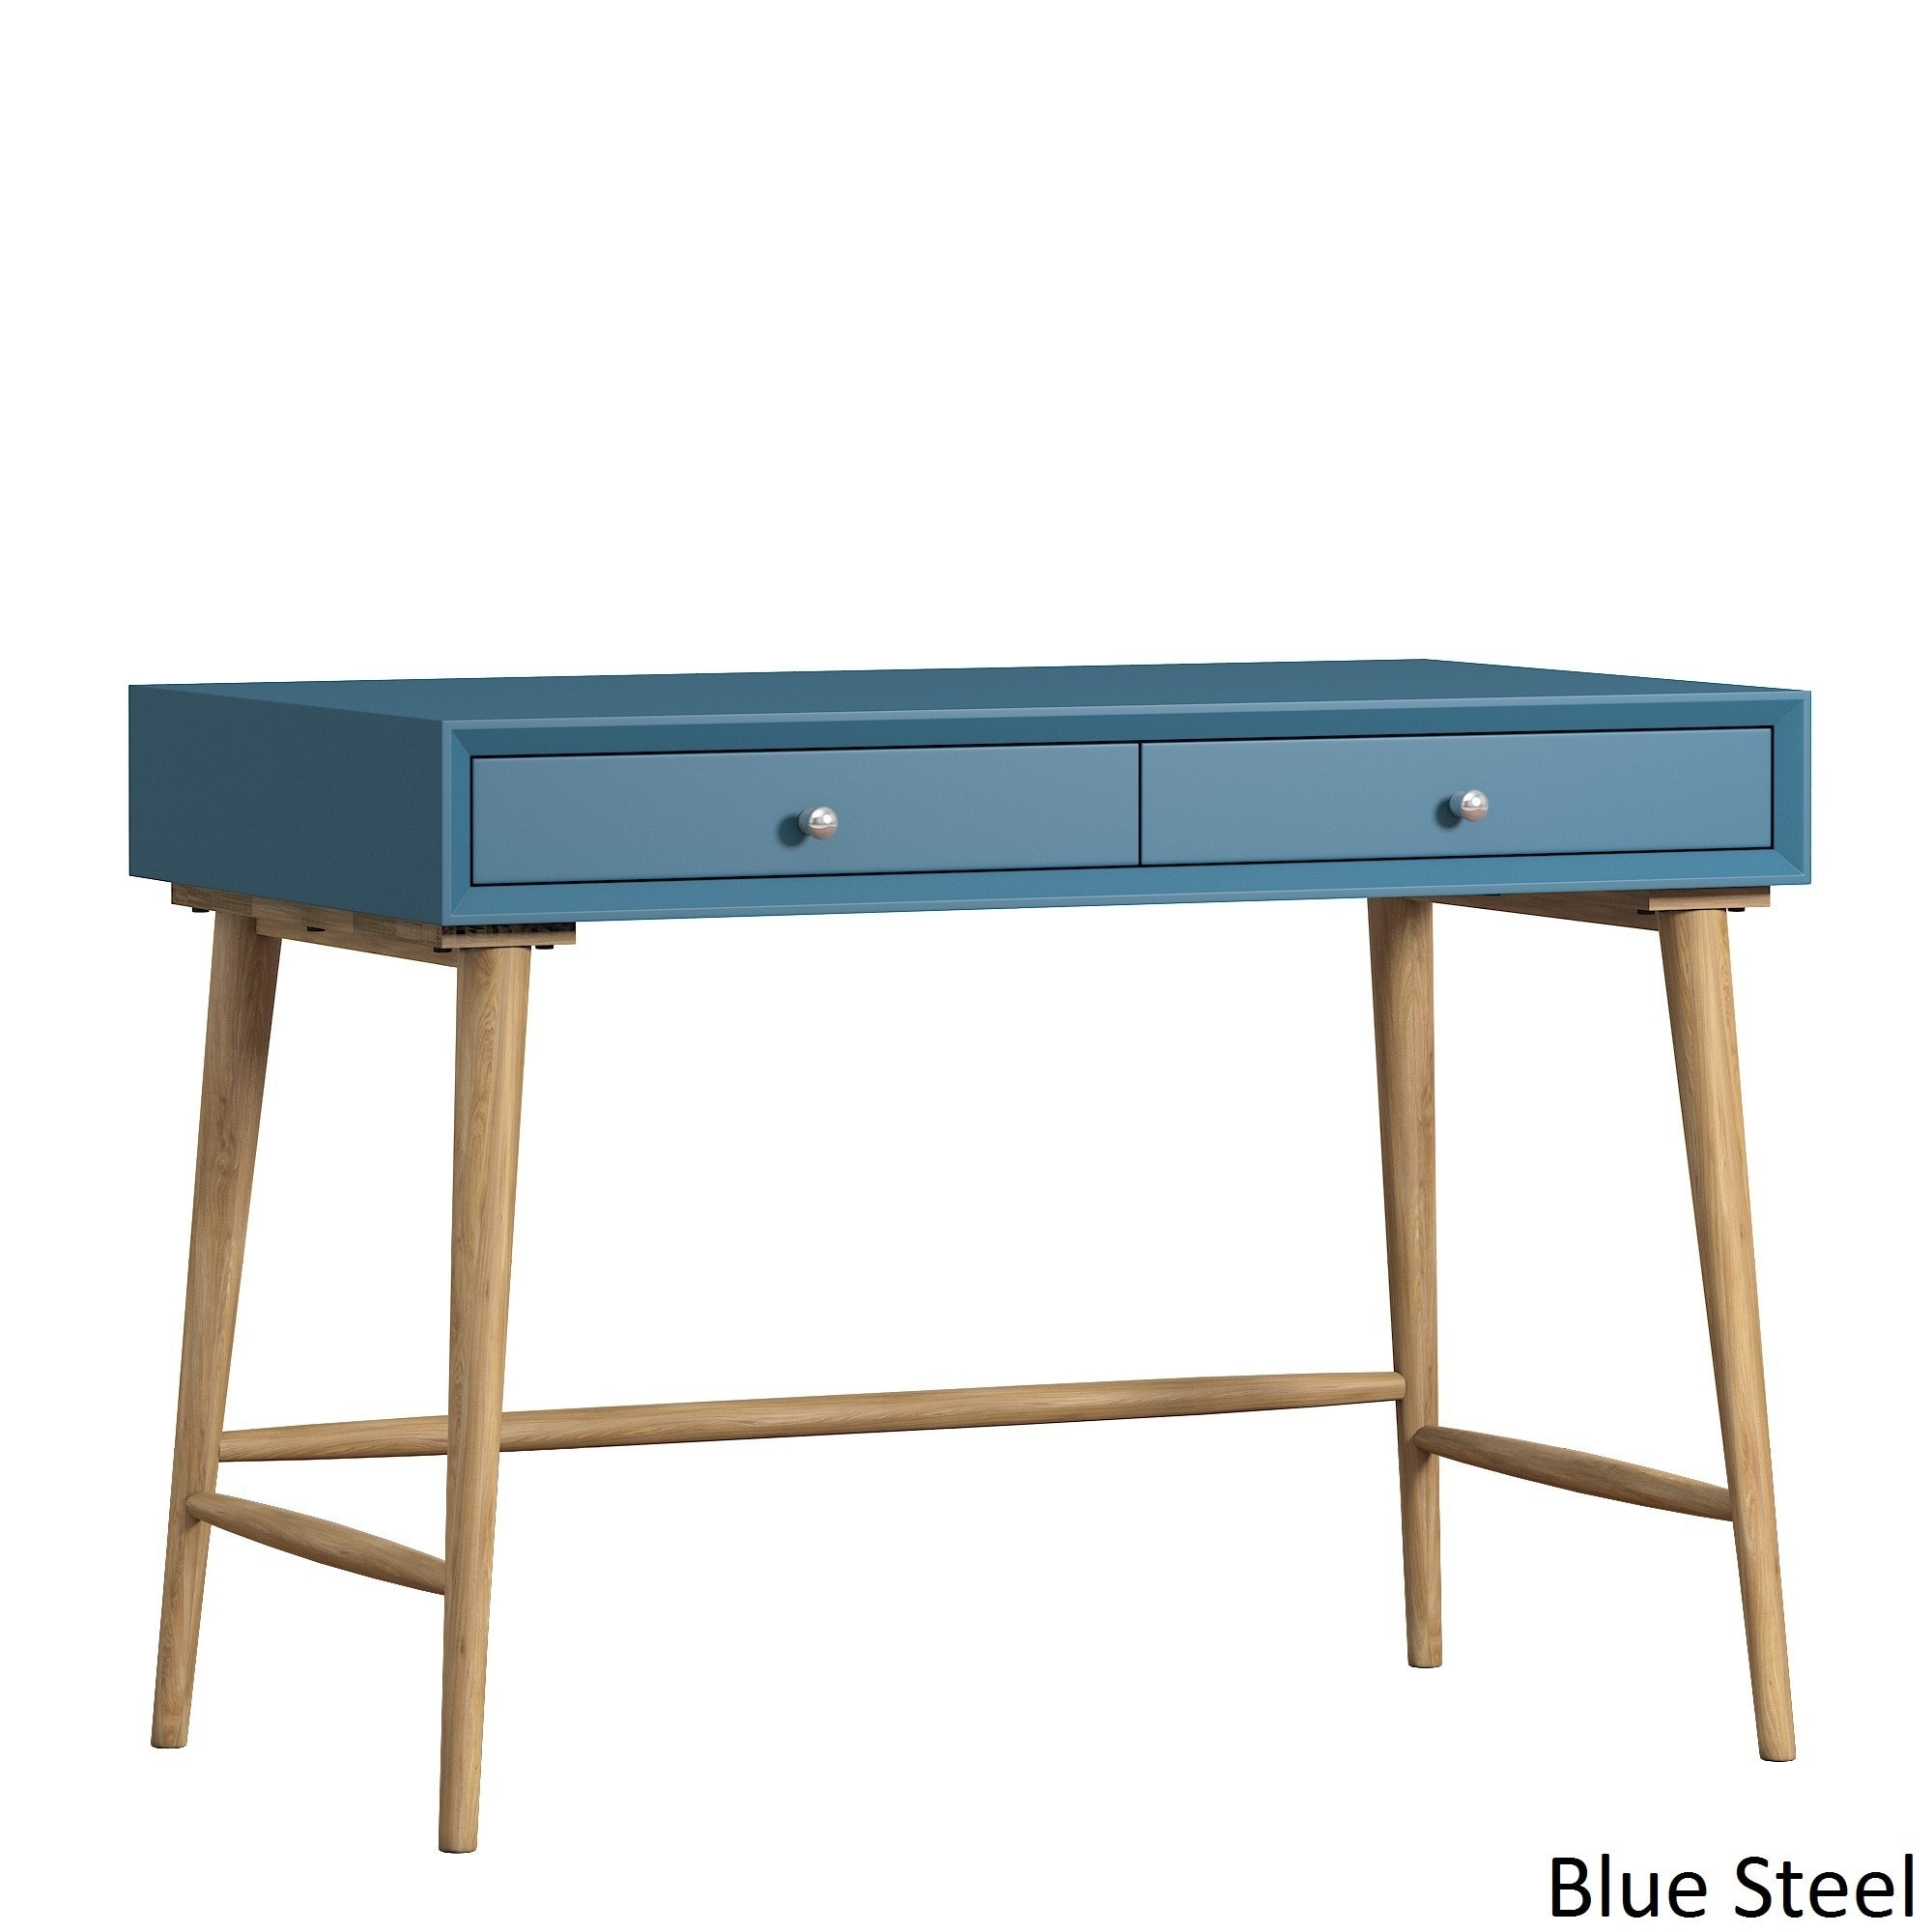 Marin Danish Modern 2-drawer Writing Desk iNSPIRE Q Modern - Free Shipping  Today - Overstock.com - 19355497